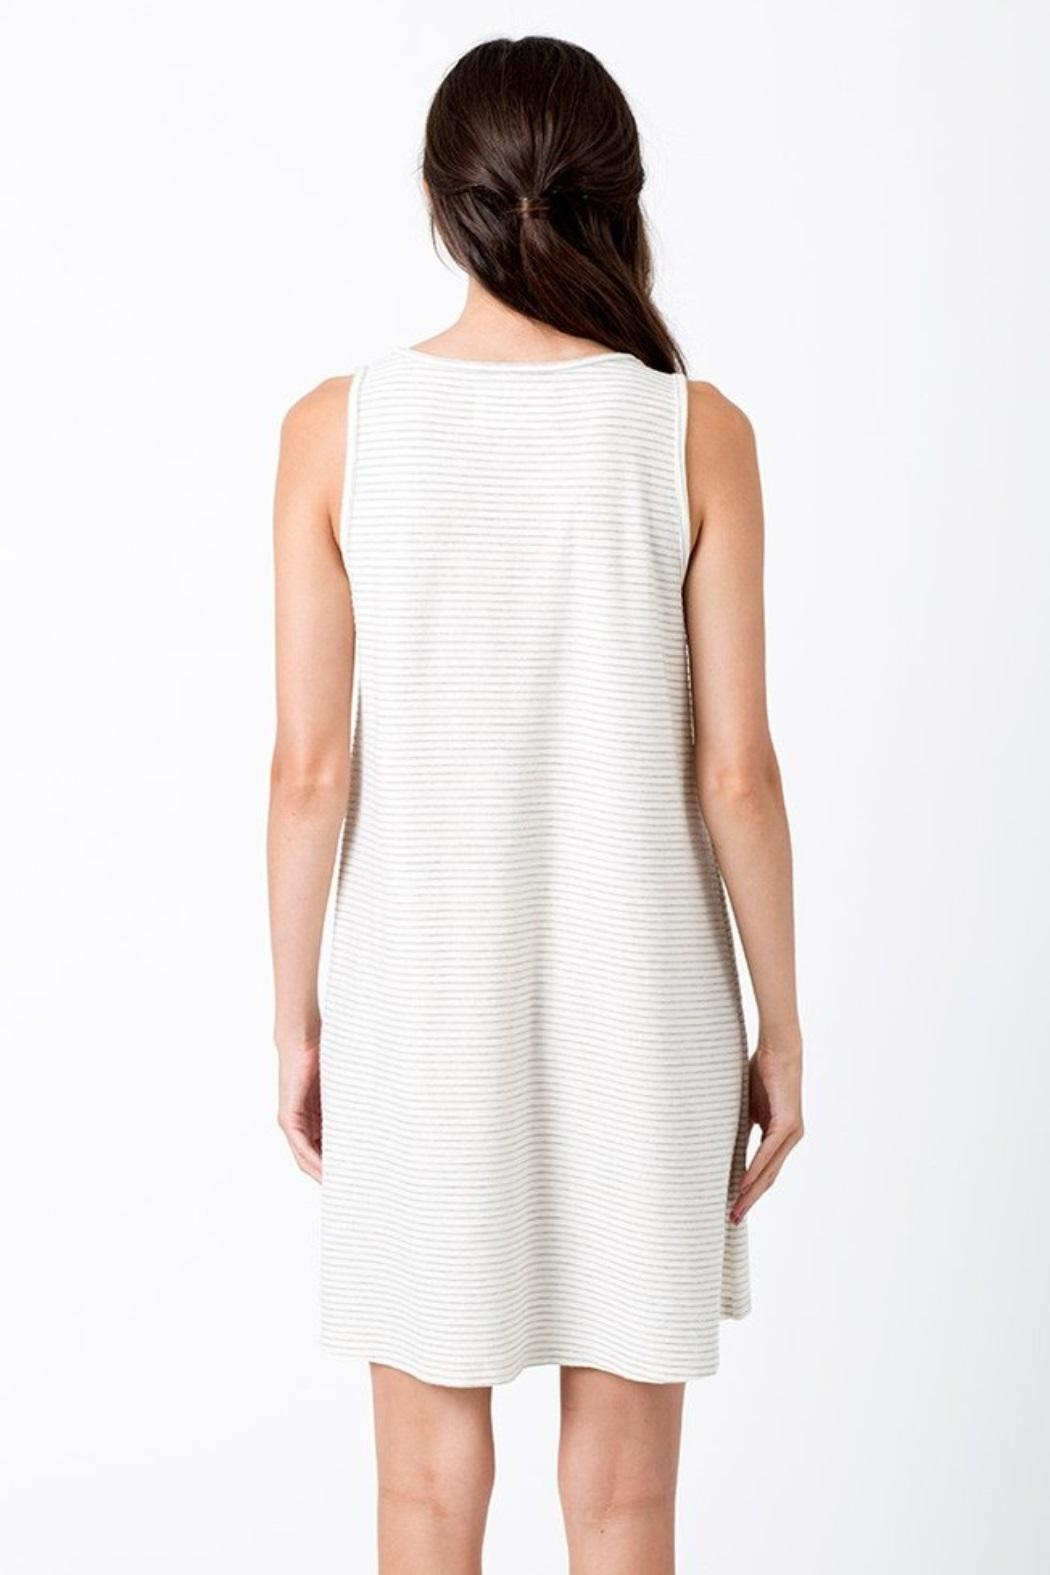 Sol Angeles Asymmetrical Dress - Side Cropped Image